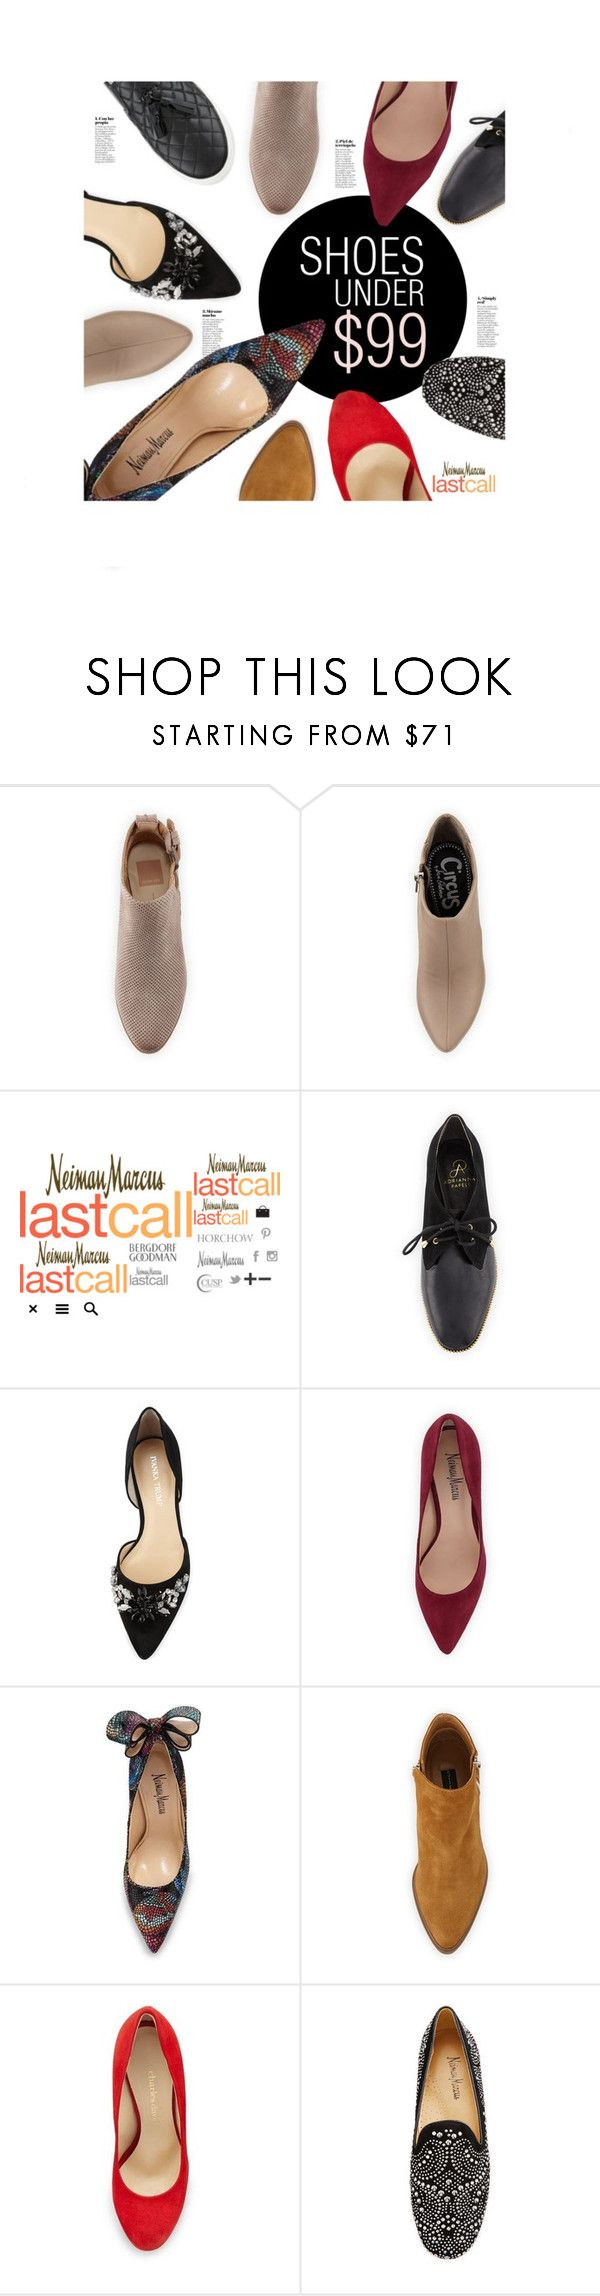 """""""Shoes Under $99"""" by lastcall ❤ liked on Polyvore featuring Dolce Vita, Circus by Sam Edelman, Lydell NYC, Adrianna Papell, Ivanka Trump, Neiman Marcus, Charles David and Donald J Pliner"""